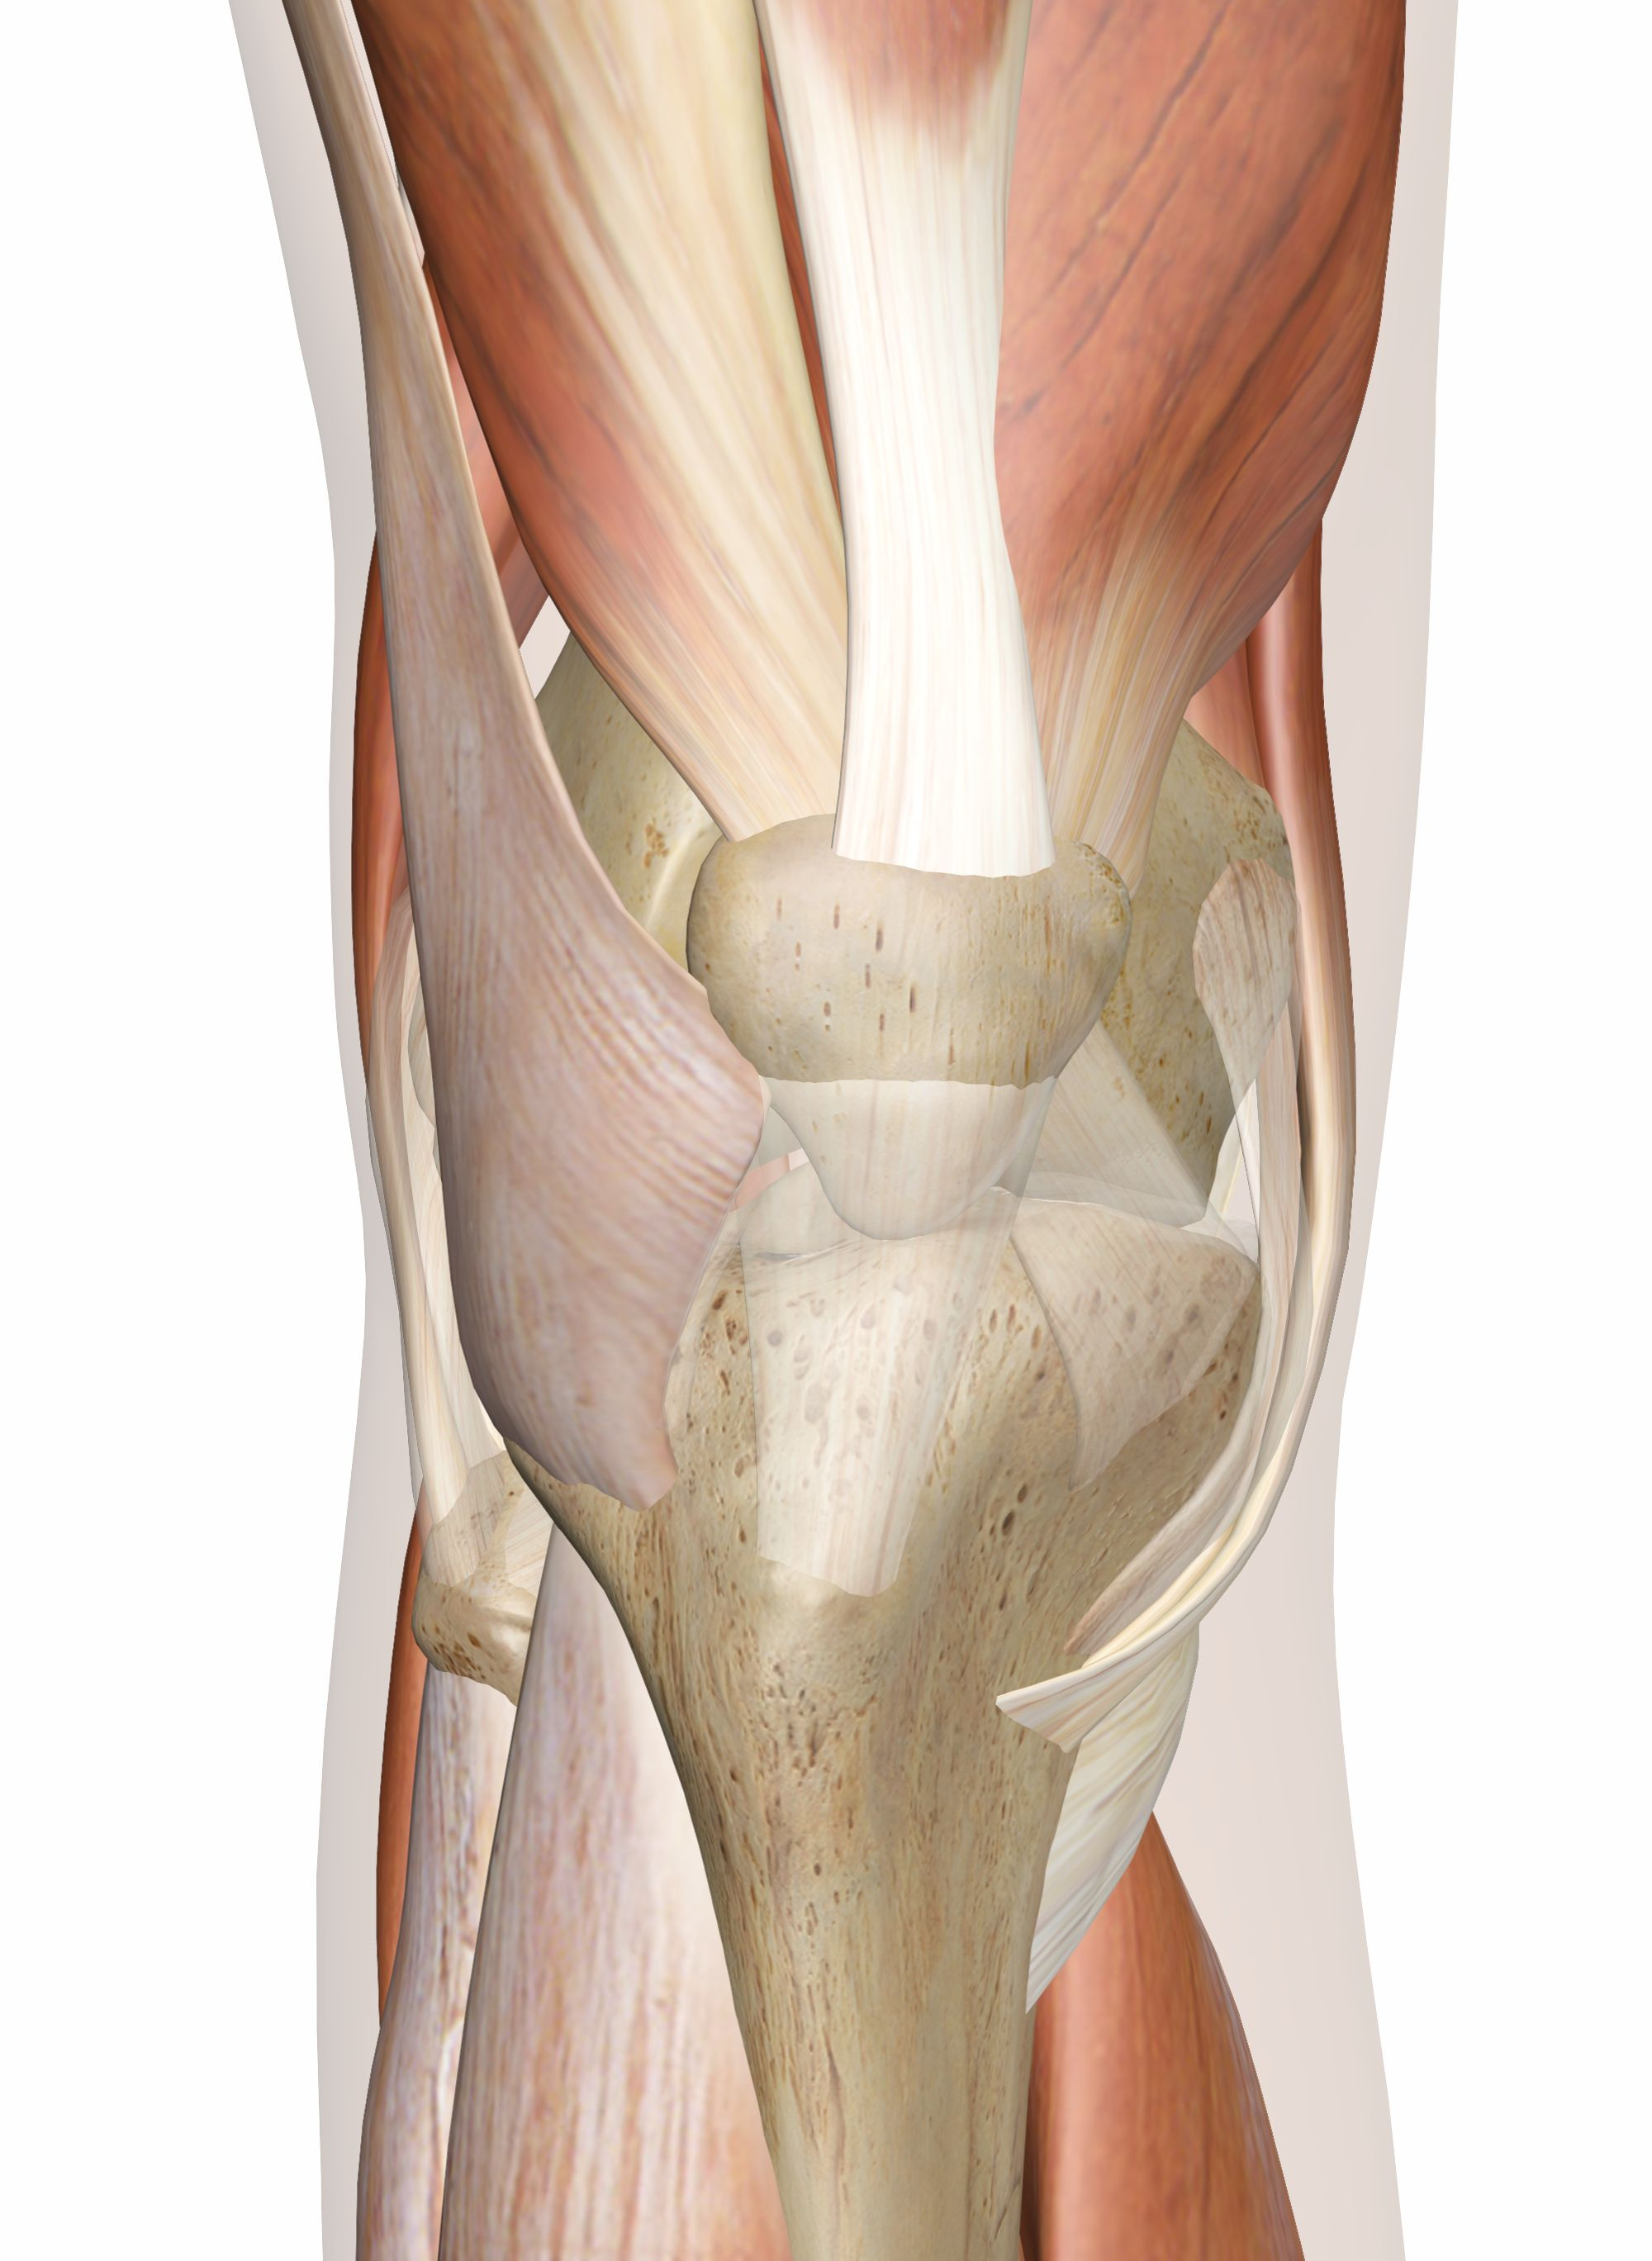 The Muscles Around Knee Diagram Wiring Diagrams Hubs